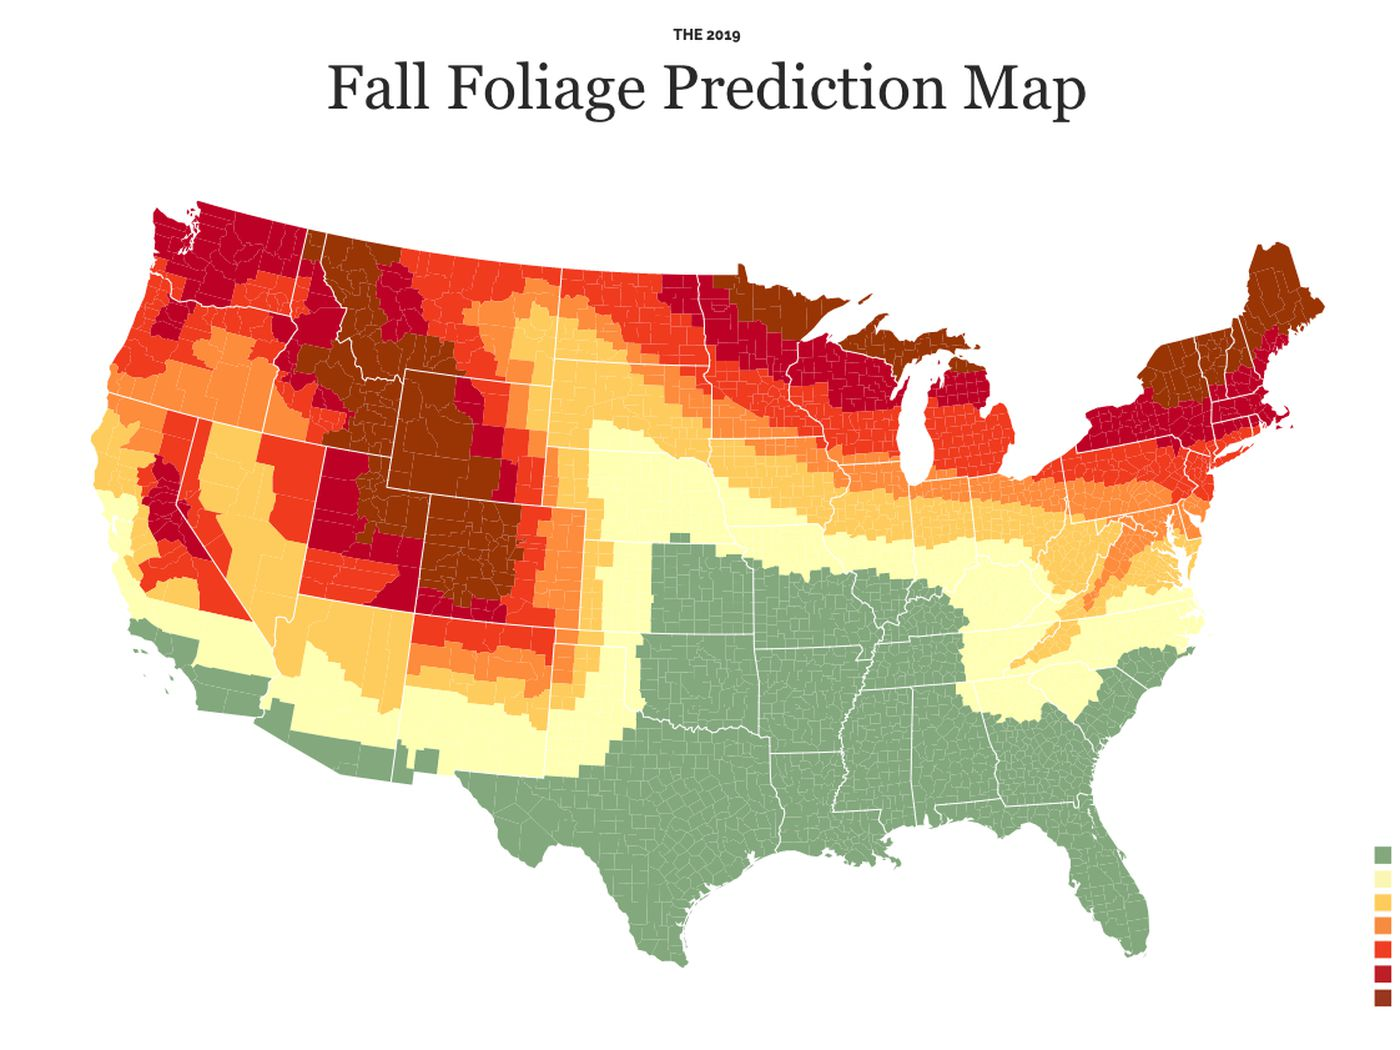 Fall colors 2019 map: when and where autumn foliage will ... on canada vegetation map, canada smoke map, canada snow map, canada forest map, canada soil map, canada white map, canada weather map, canada landscape map, canada water map, canada animals map, canada blank map, canada tropical map, canada hardiness map, canada beach map, canada green map, canada terrain map, canada fall map, canada fire map, canada geological features map, canada mountains map,